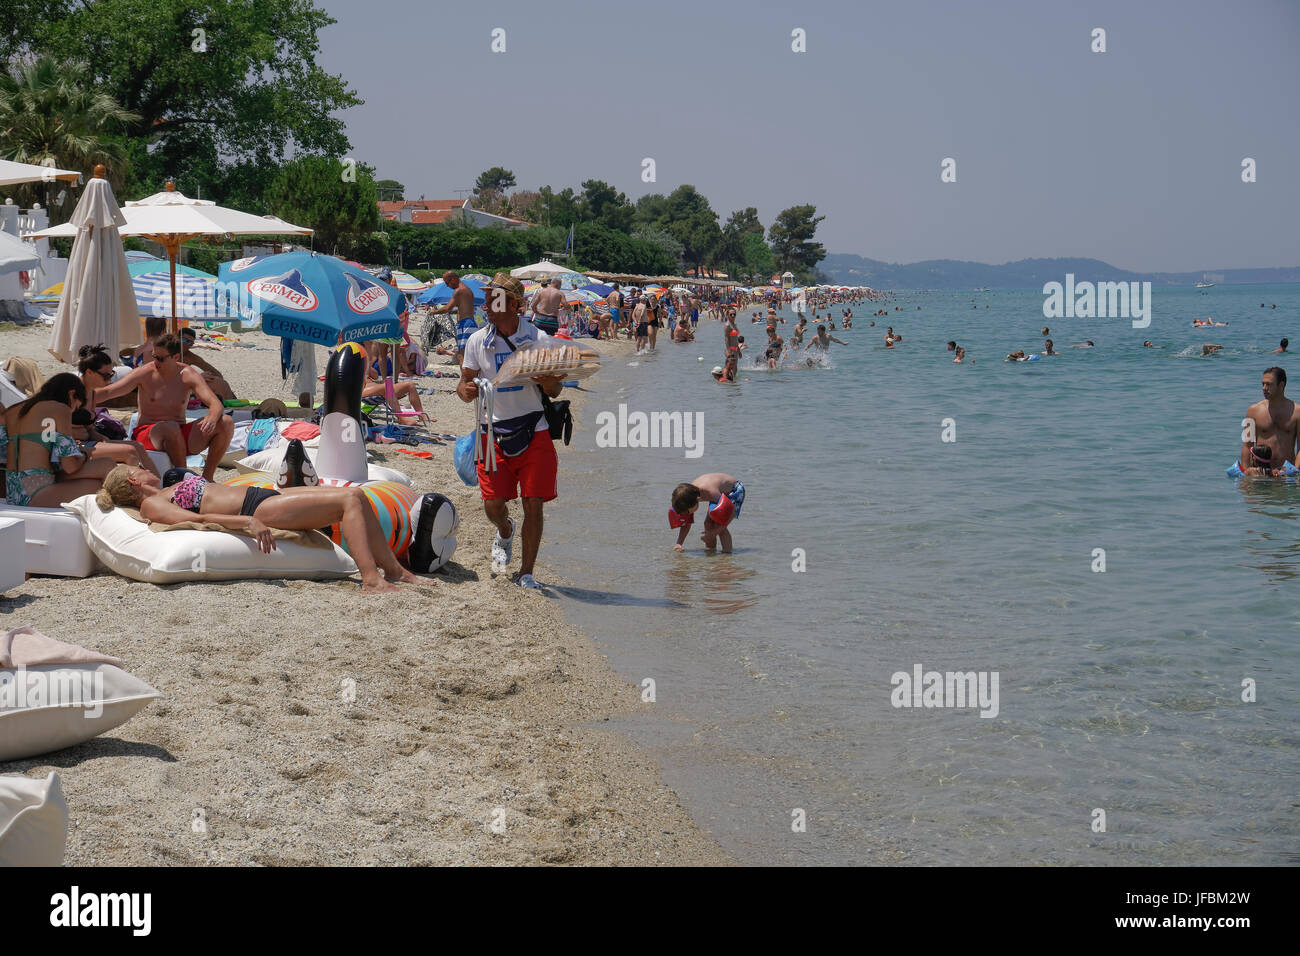 Beach vendor selling Greek donut carrying the plate with his hand on a hot summer day by a beach bar. - Stock Image